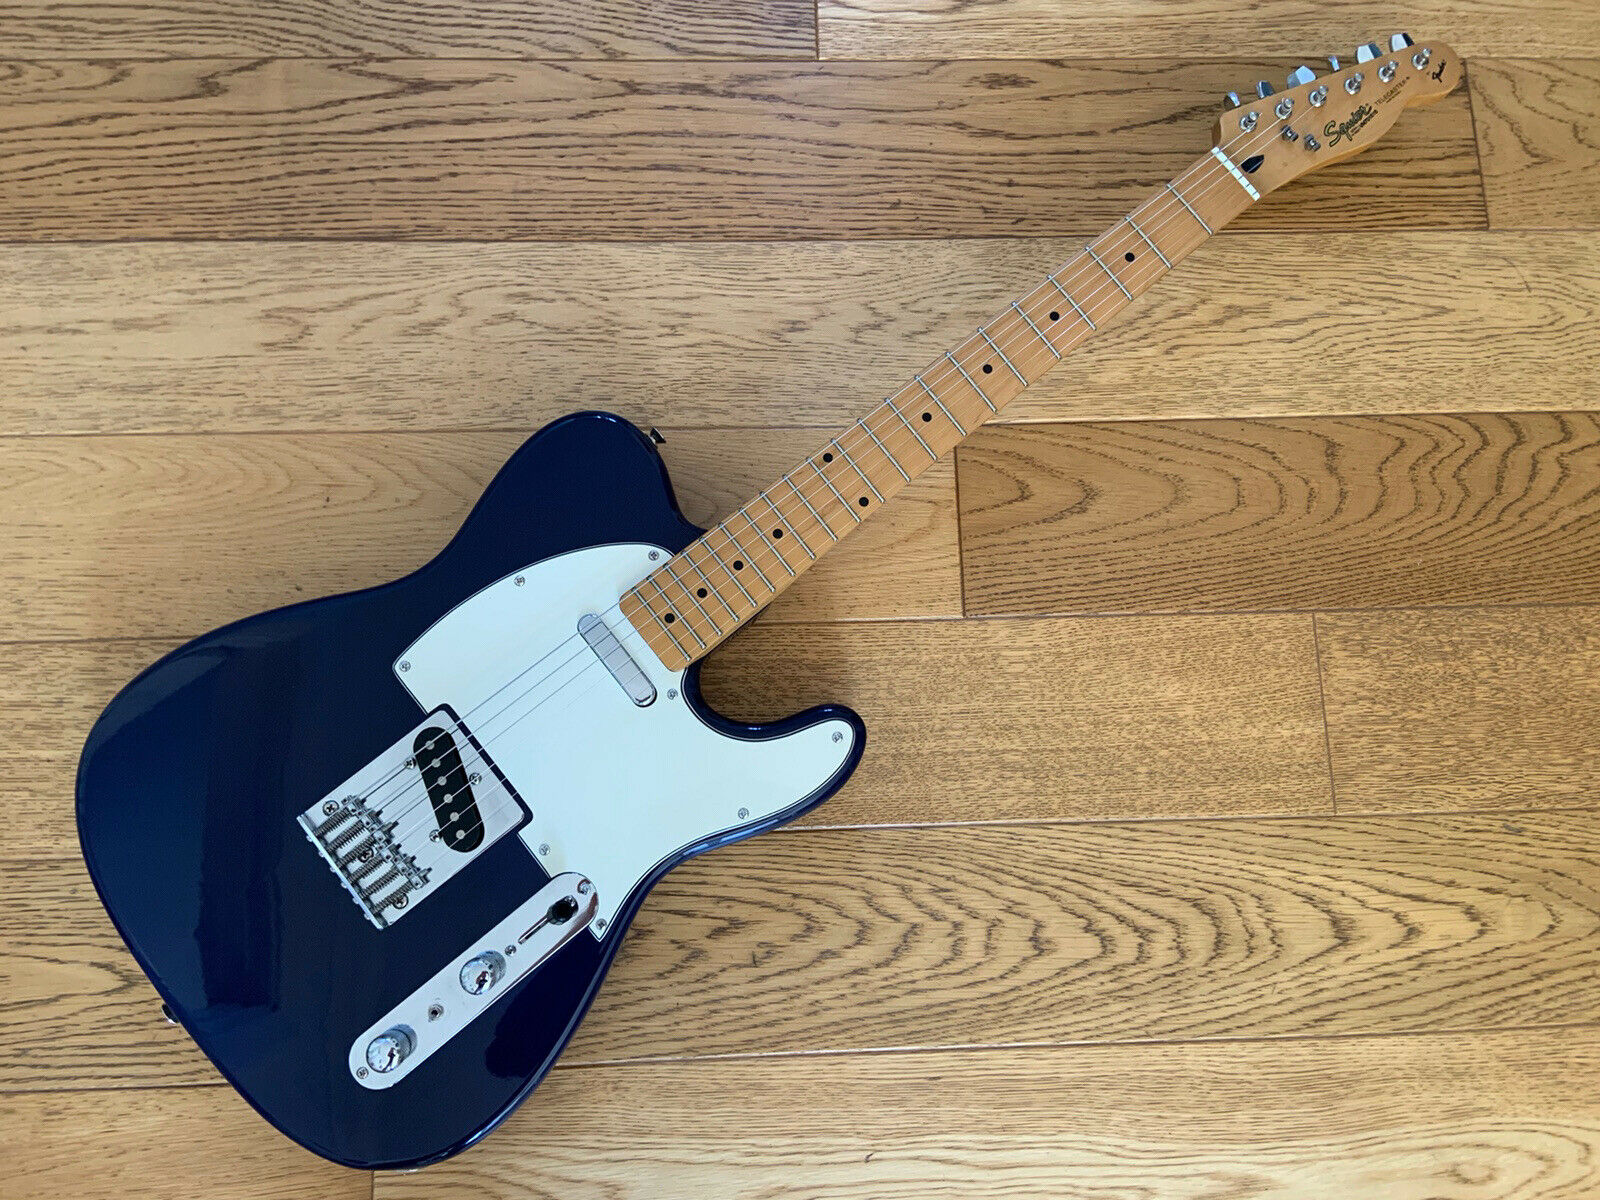 This Squier Telecaster electric guitar is for sale - Squier Telecaster Electric Guitar - Made in Korea - Dark Blue Gold Label '97